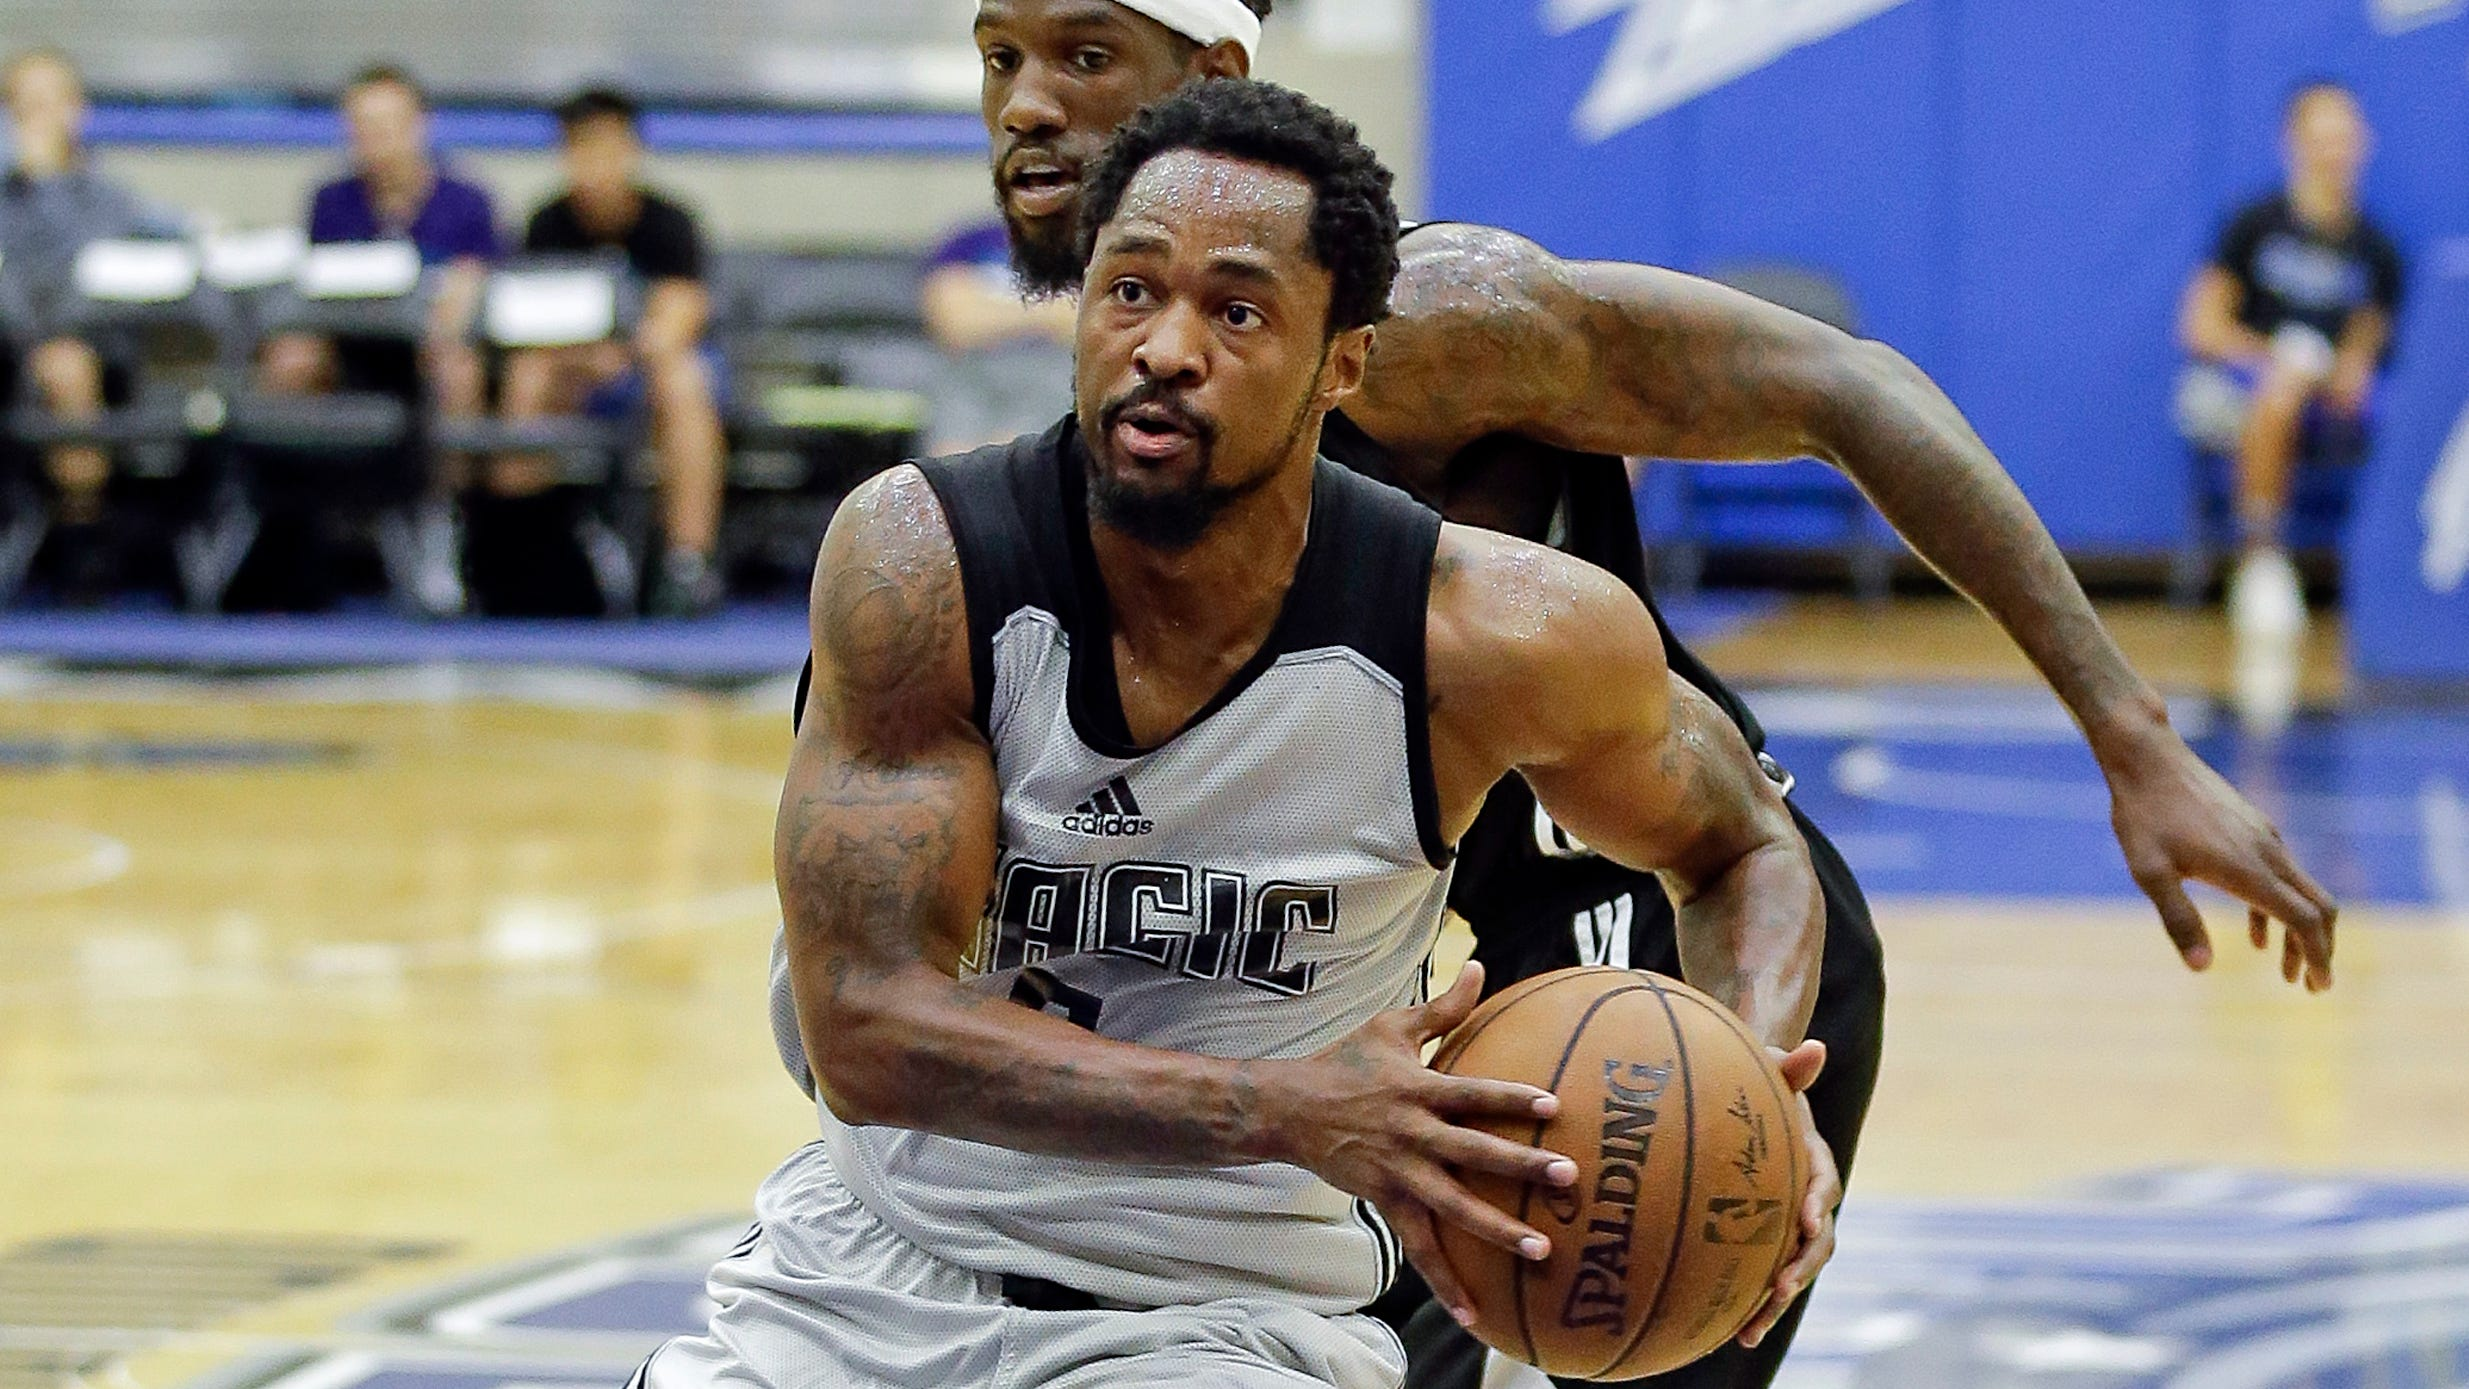 Former Michigan State star Kalin Lucas' professional basketball journey has taken him to Greece, Turkey, Memphis and multiple stops in the NBA's development league. He's with the Grand Rapids Drive now, on a two-way contract with the Pistons.